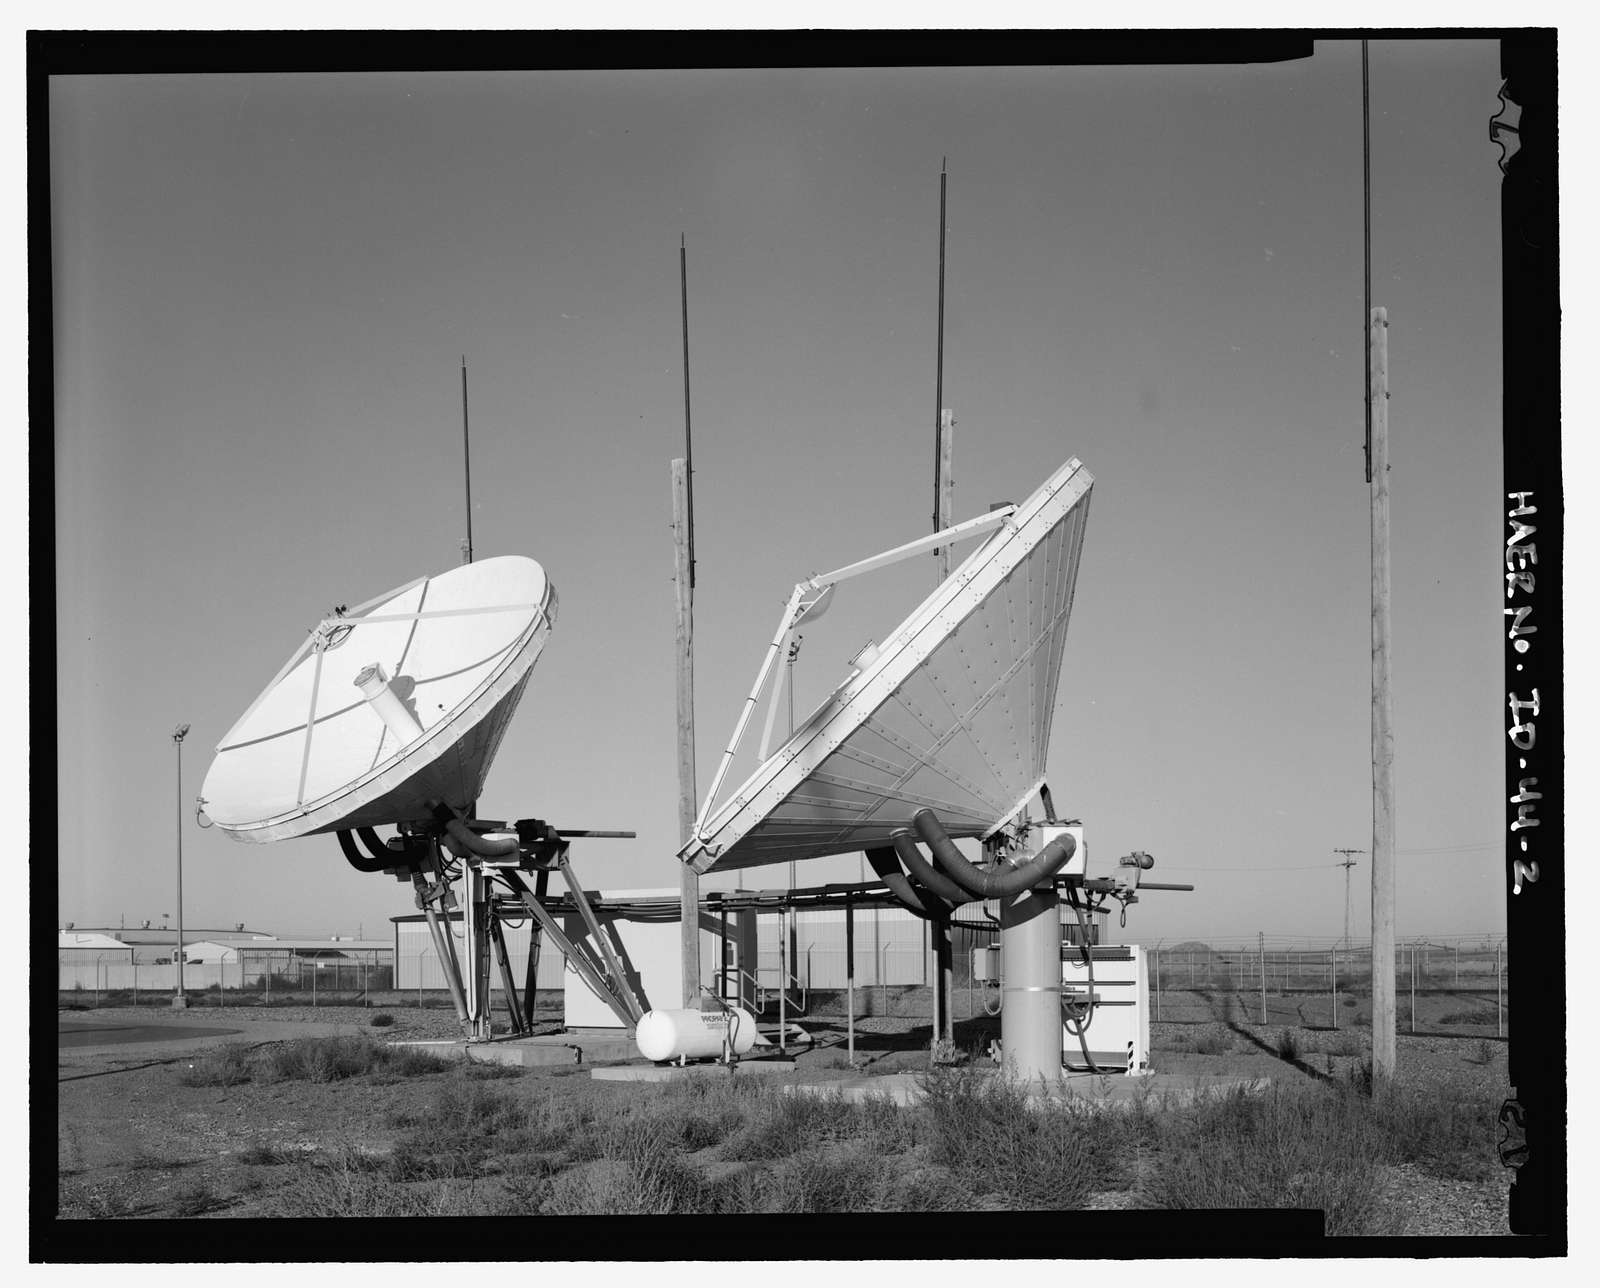 Over-the-Horizon Backscatter Radar Network, Mountain Home Air Force Operations Building, On Desert Street at 9th Avenue Mountain Home Air Force Base, Mountain Home, Elmore County, ID